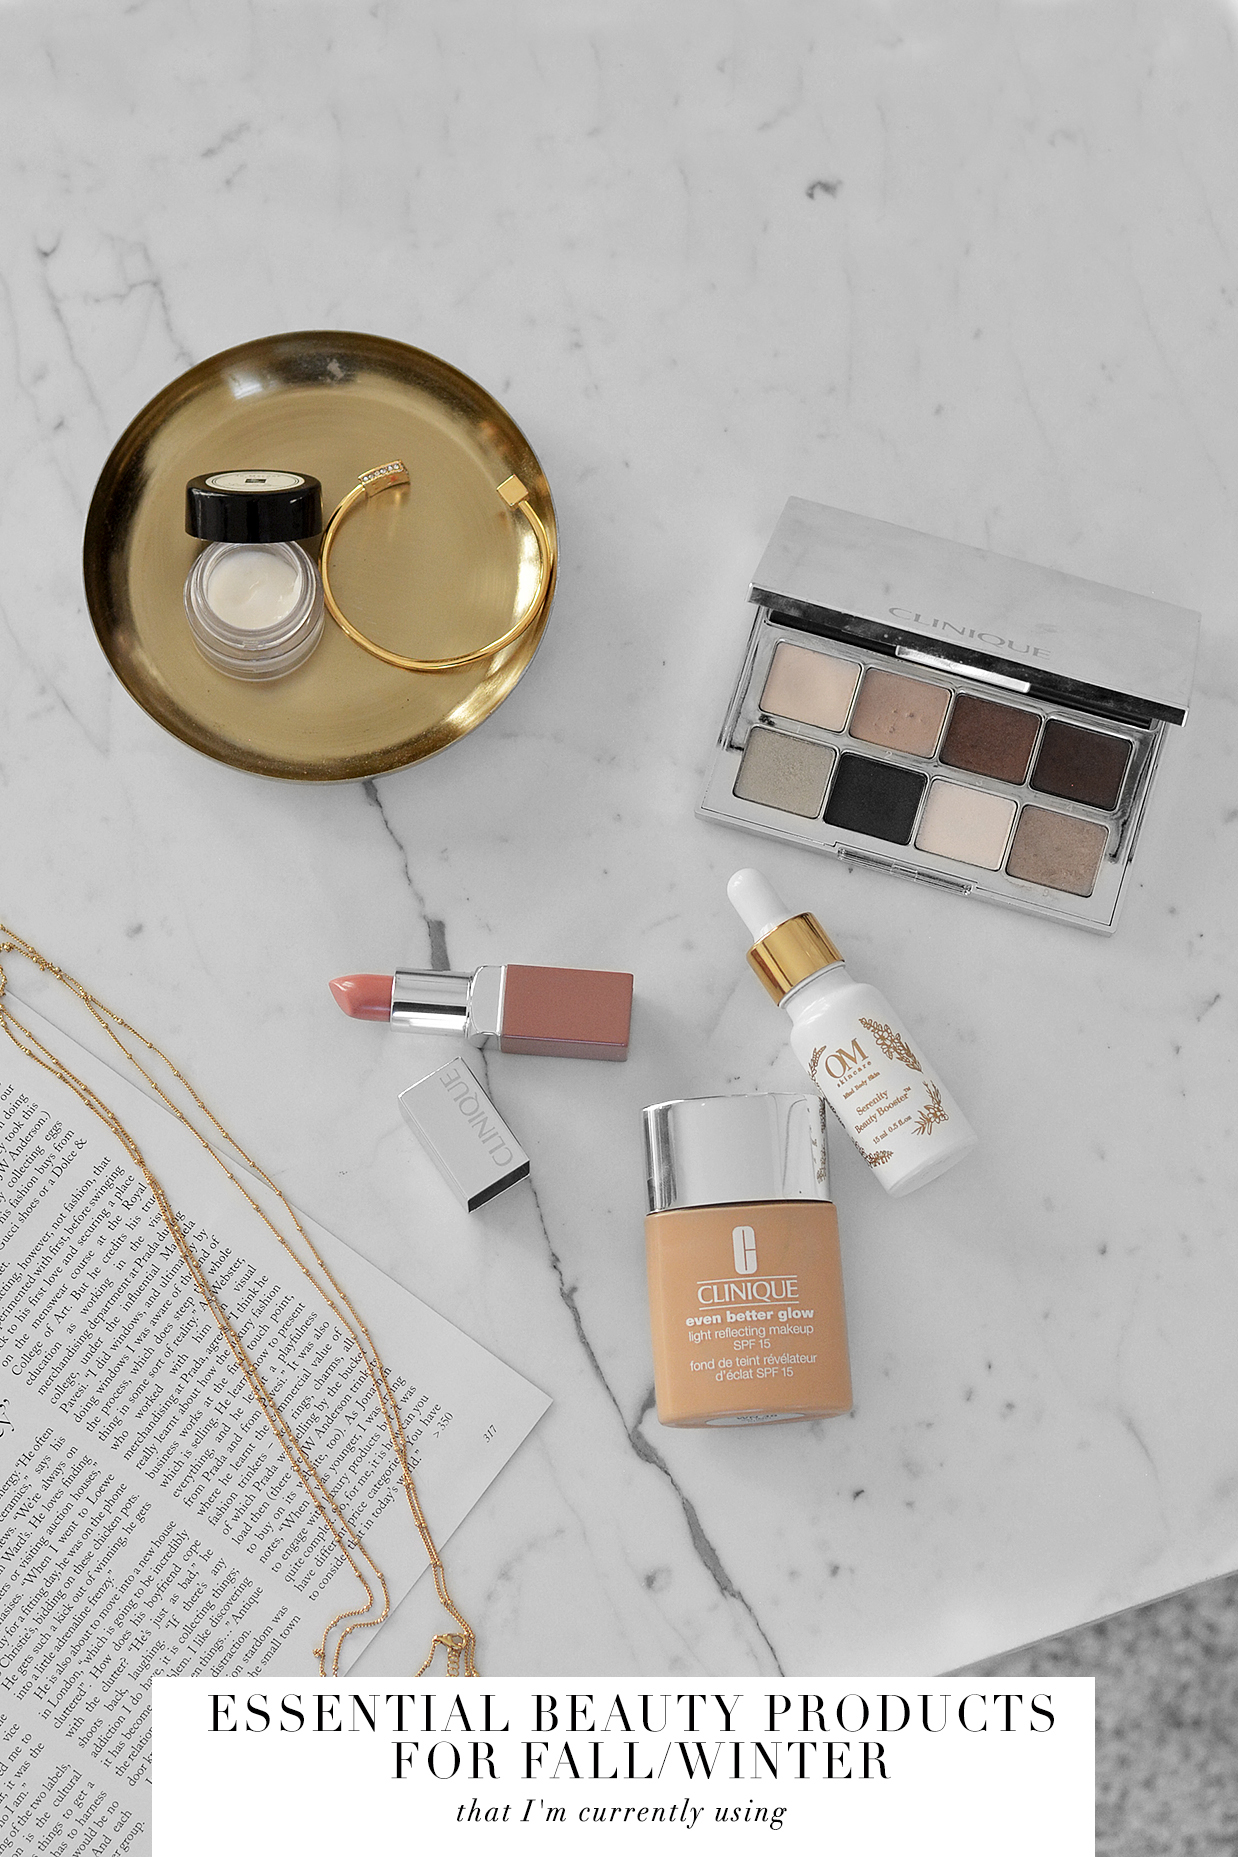 ESSENTIAL BEAUTY PRODUCTS I'M USING THIS FALL